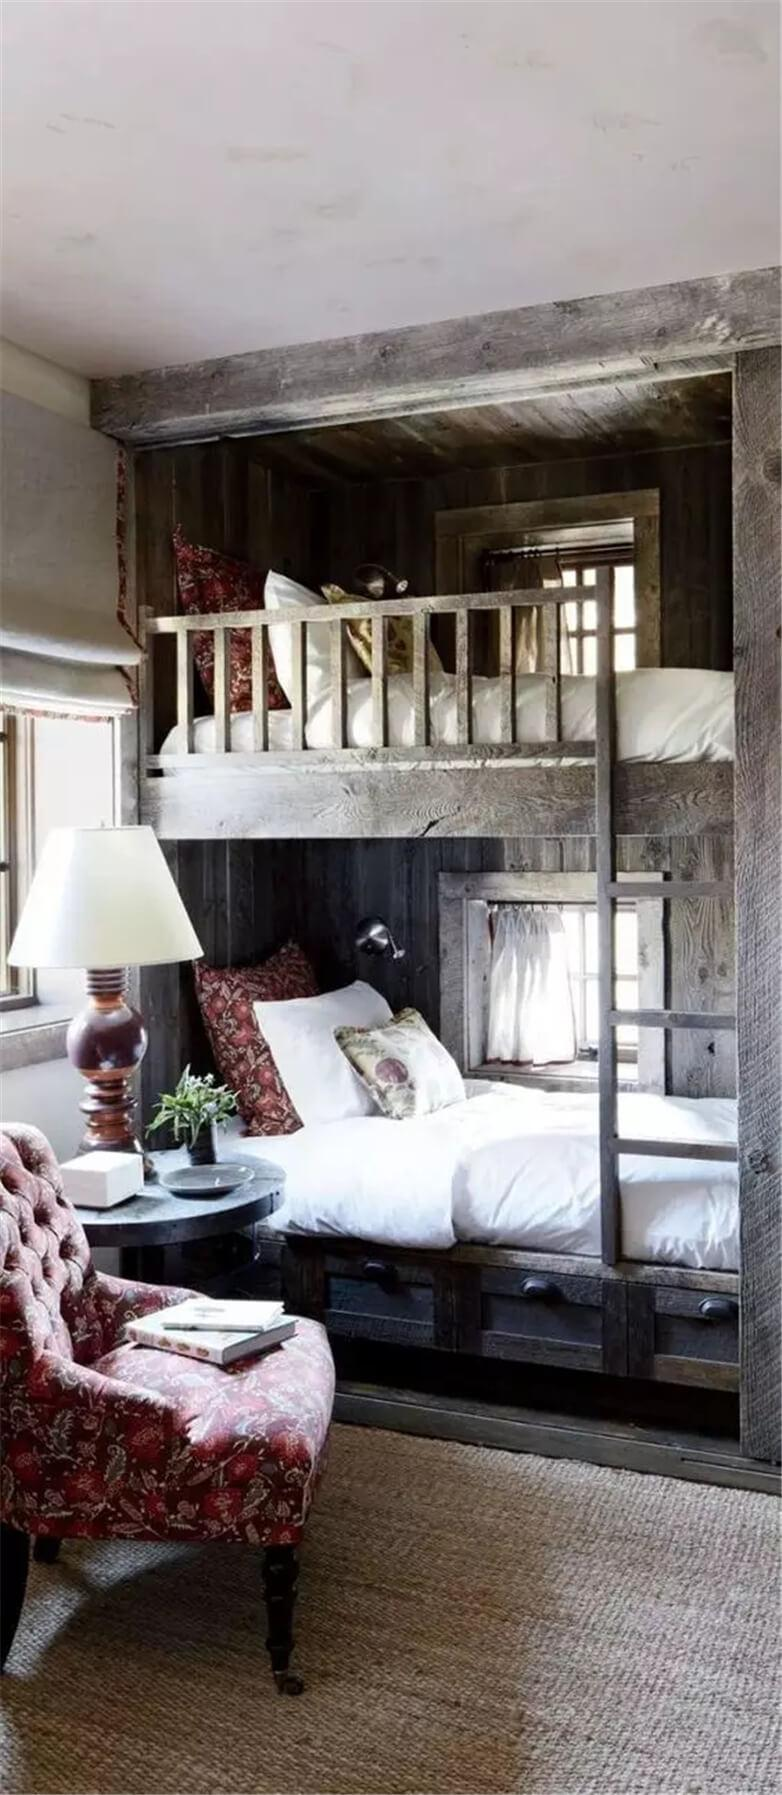 Bunk Beds with a Chair for Reading